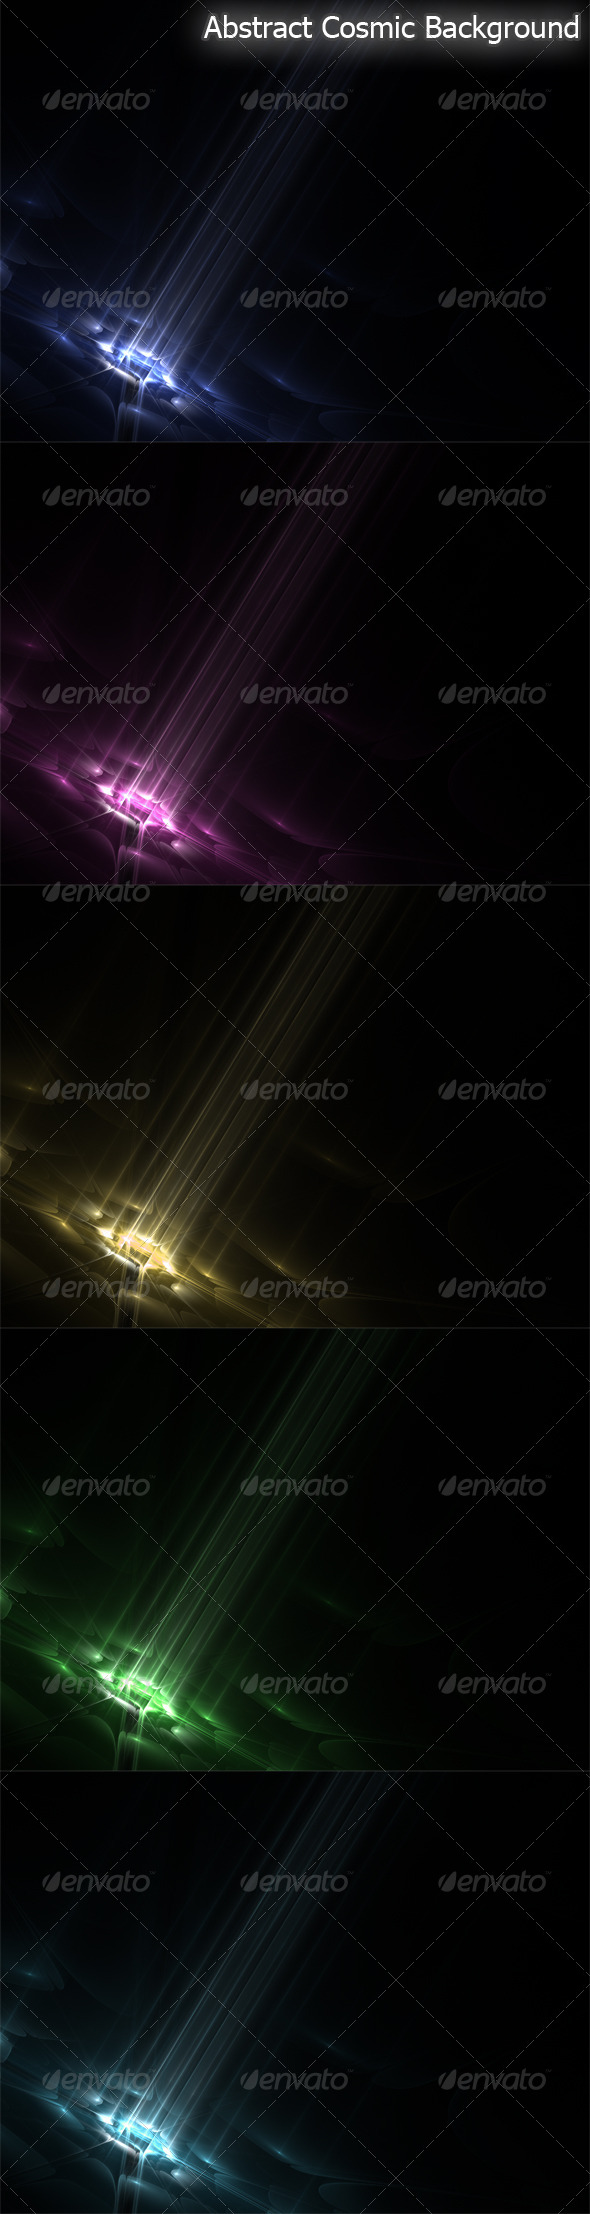 GraphicRiver Abstract Cosmic Background 3200x2400px 6358141